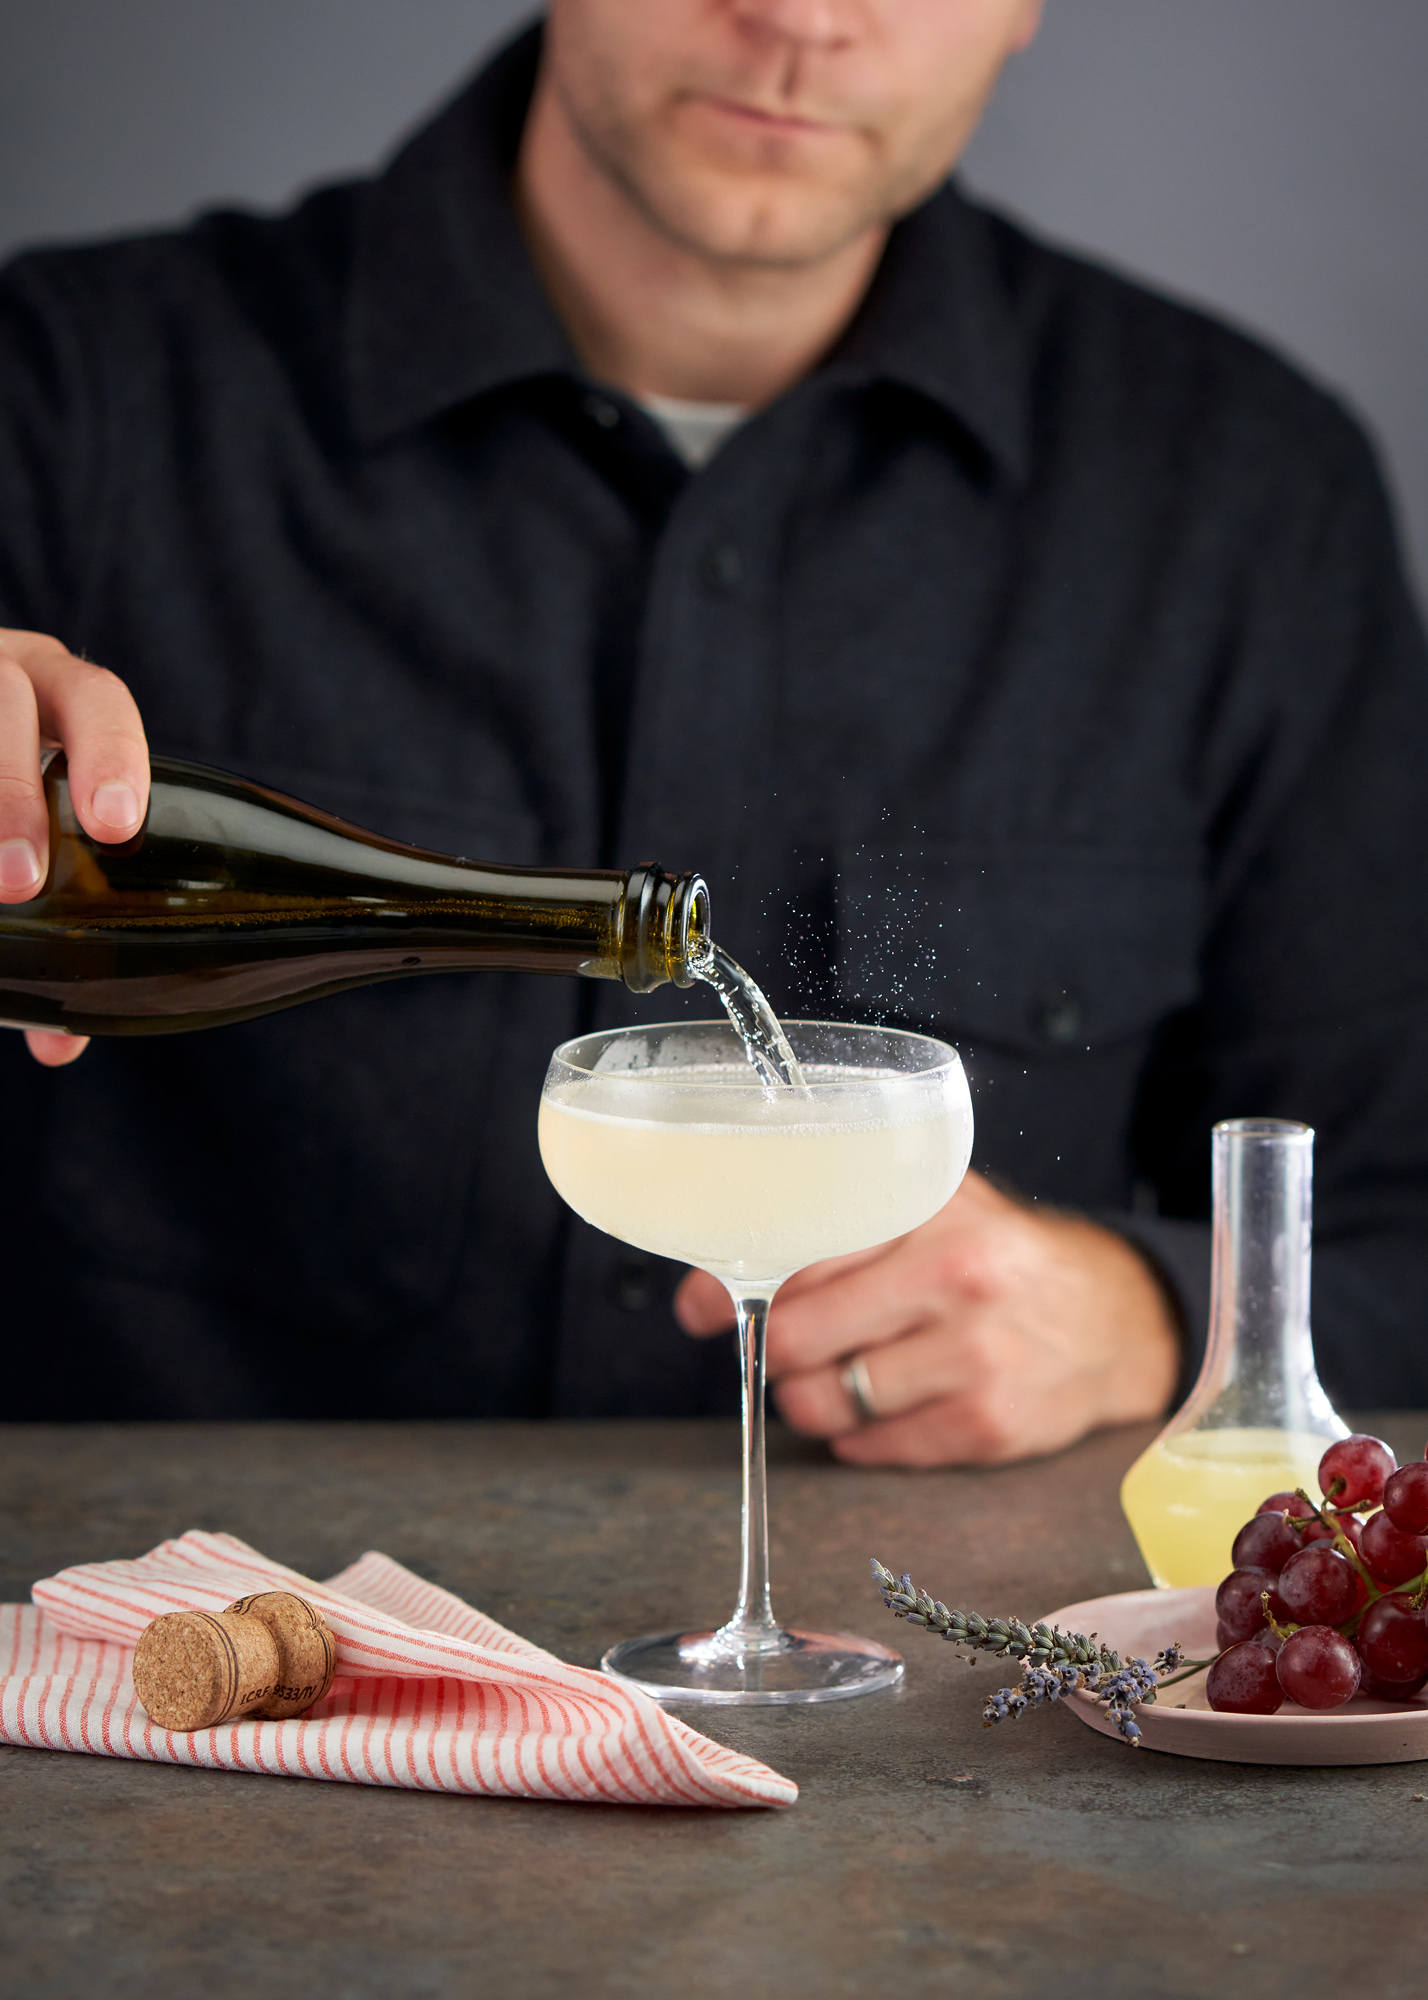 French 75 Cocktail being made